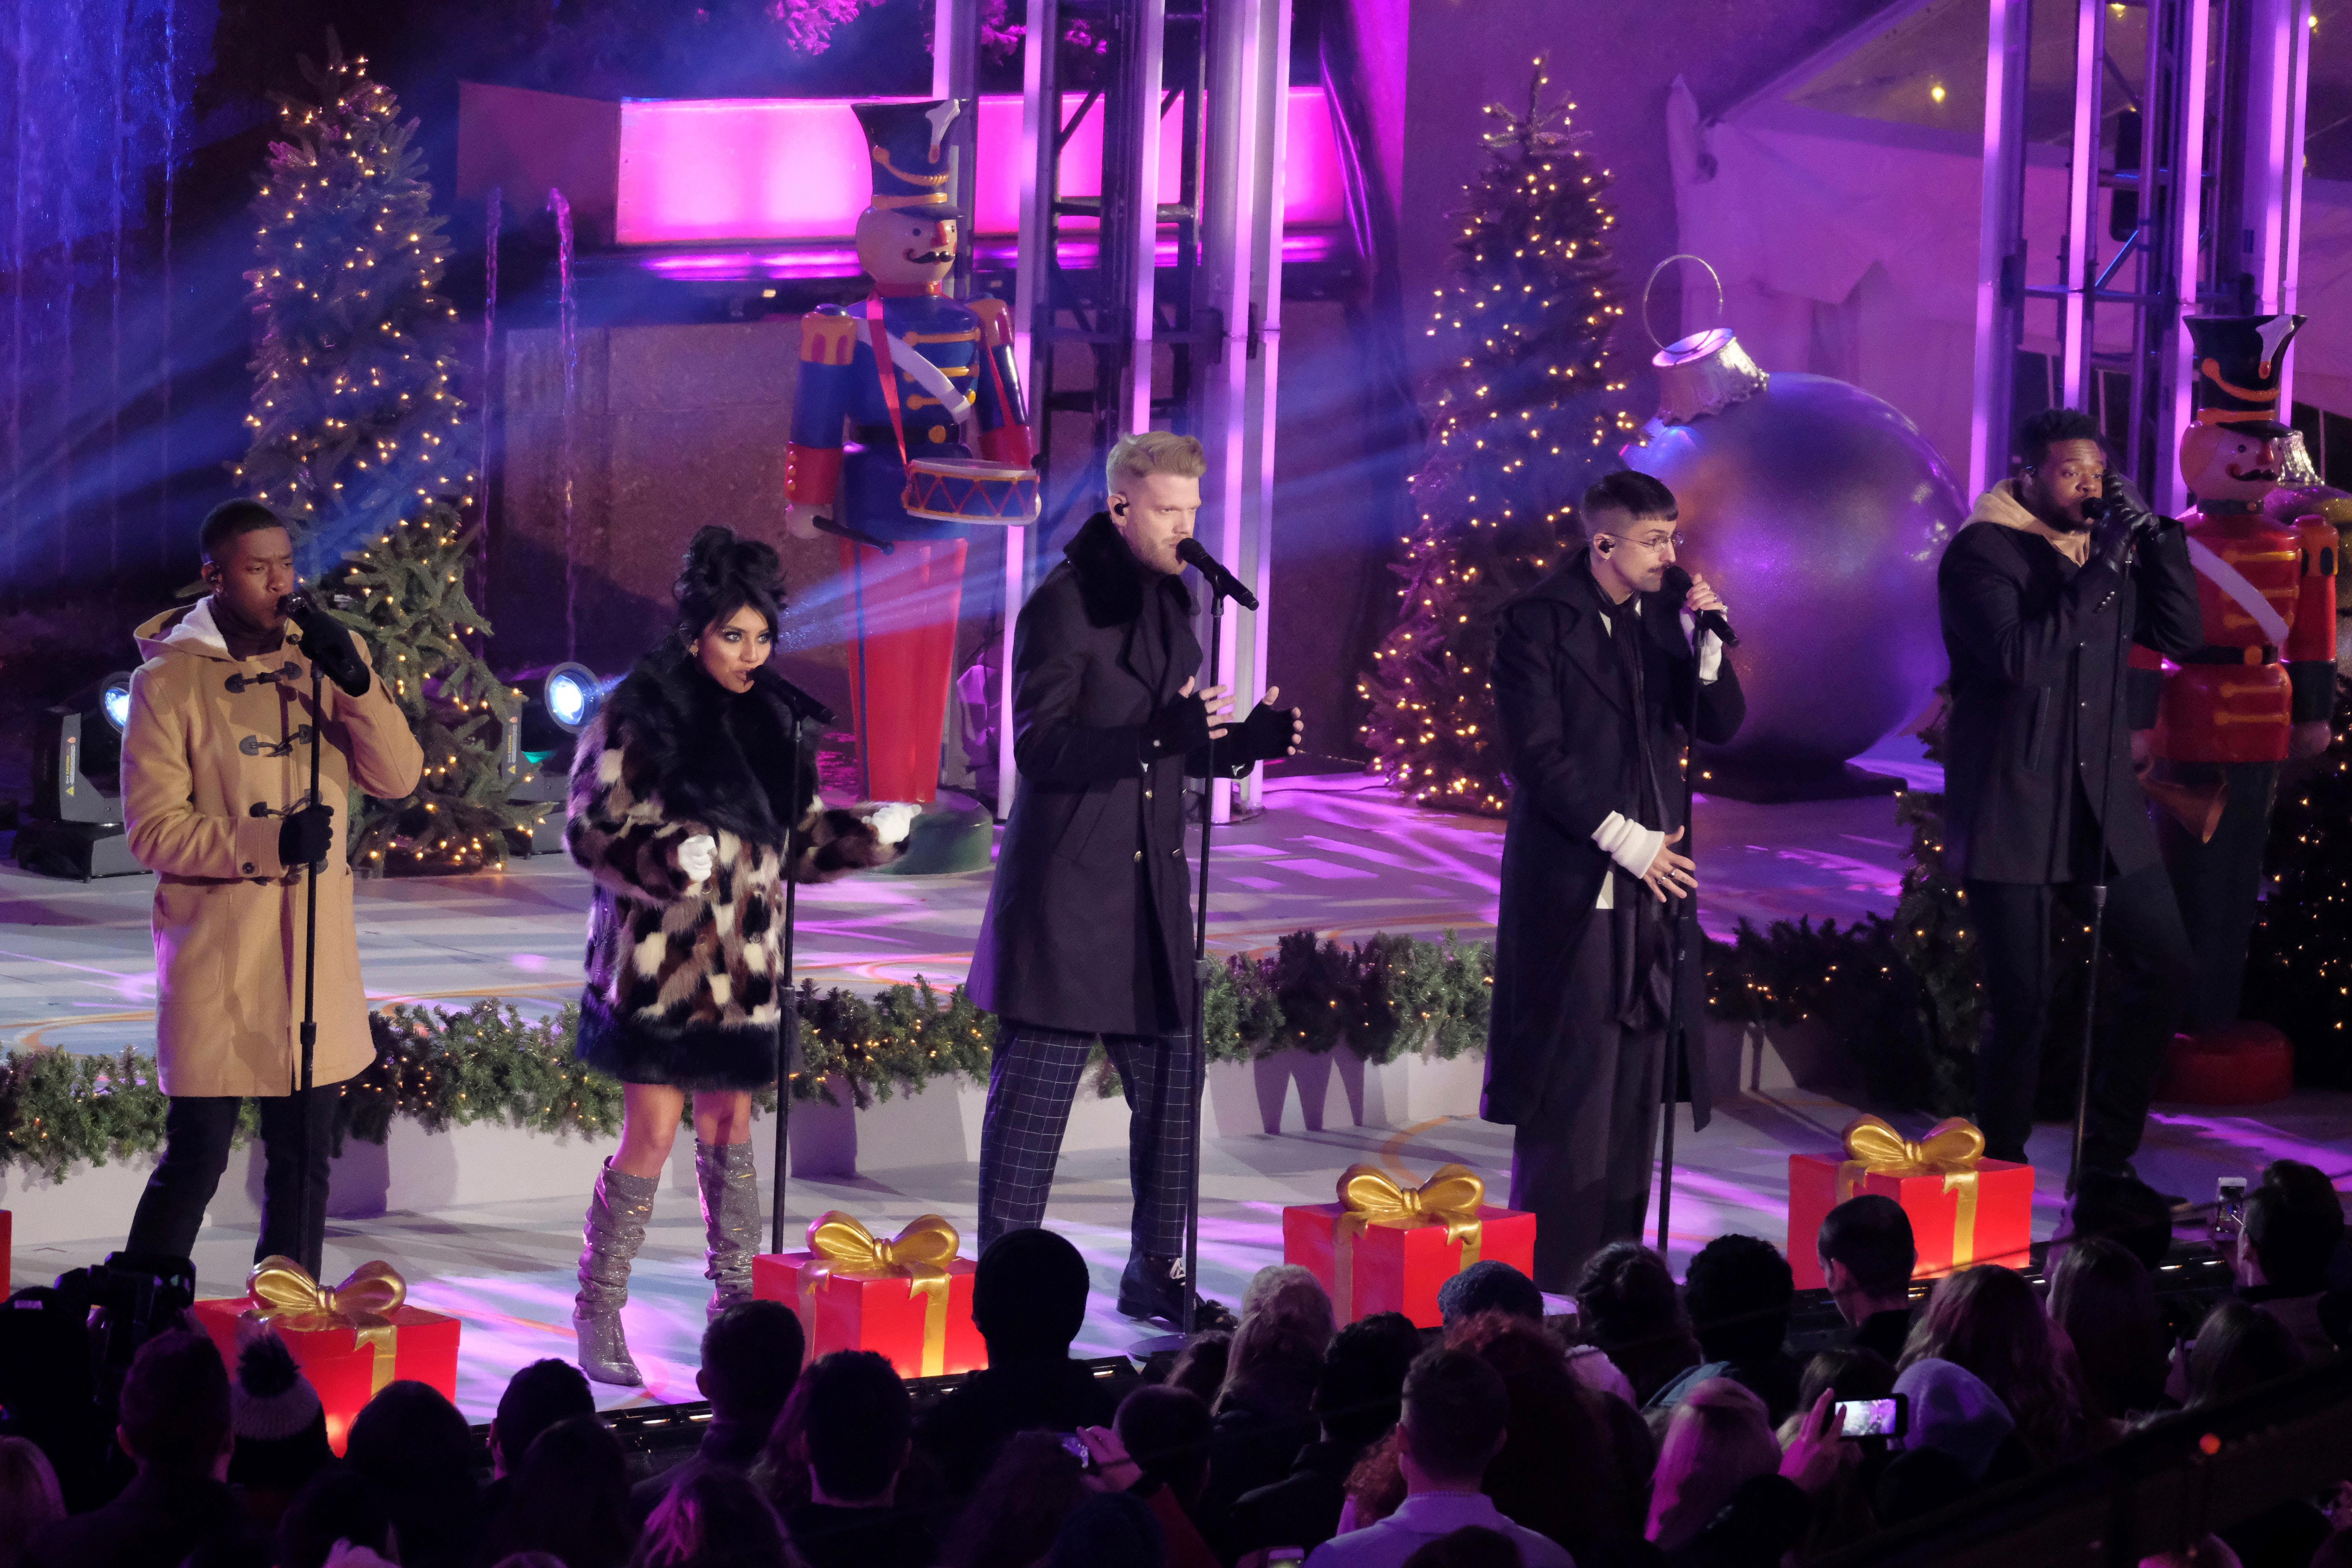 Christmas Tree Lighting Ceremony On Pentatonix Members, From Left, Matt